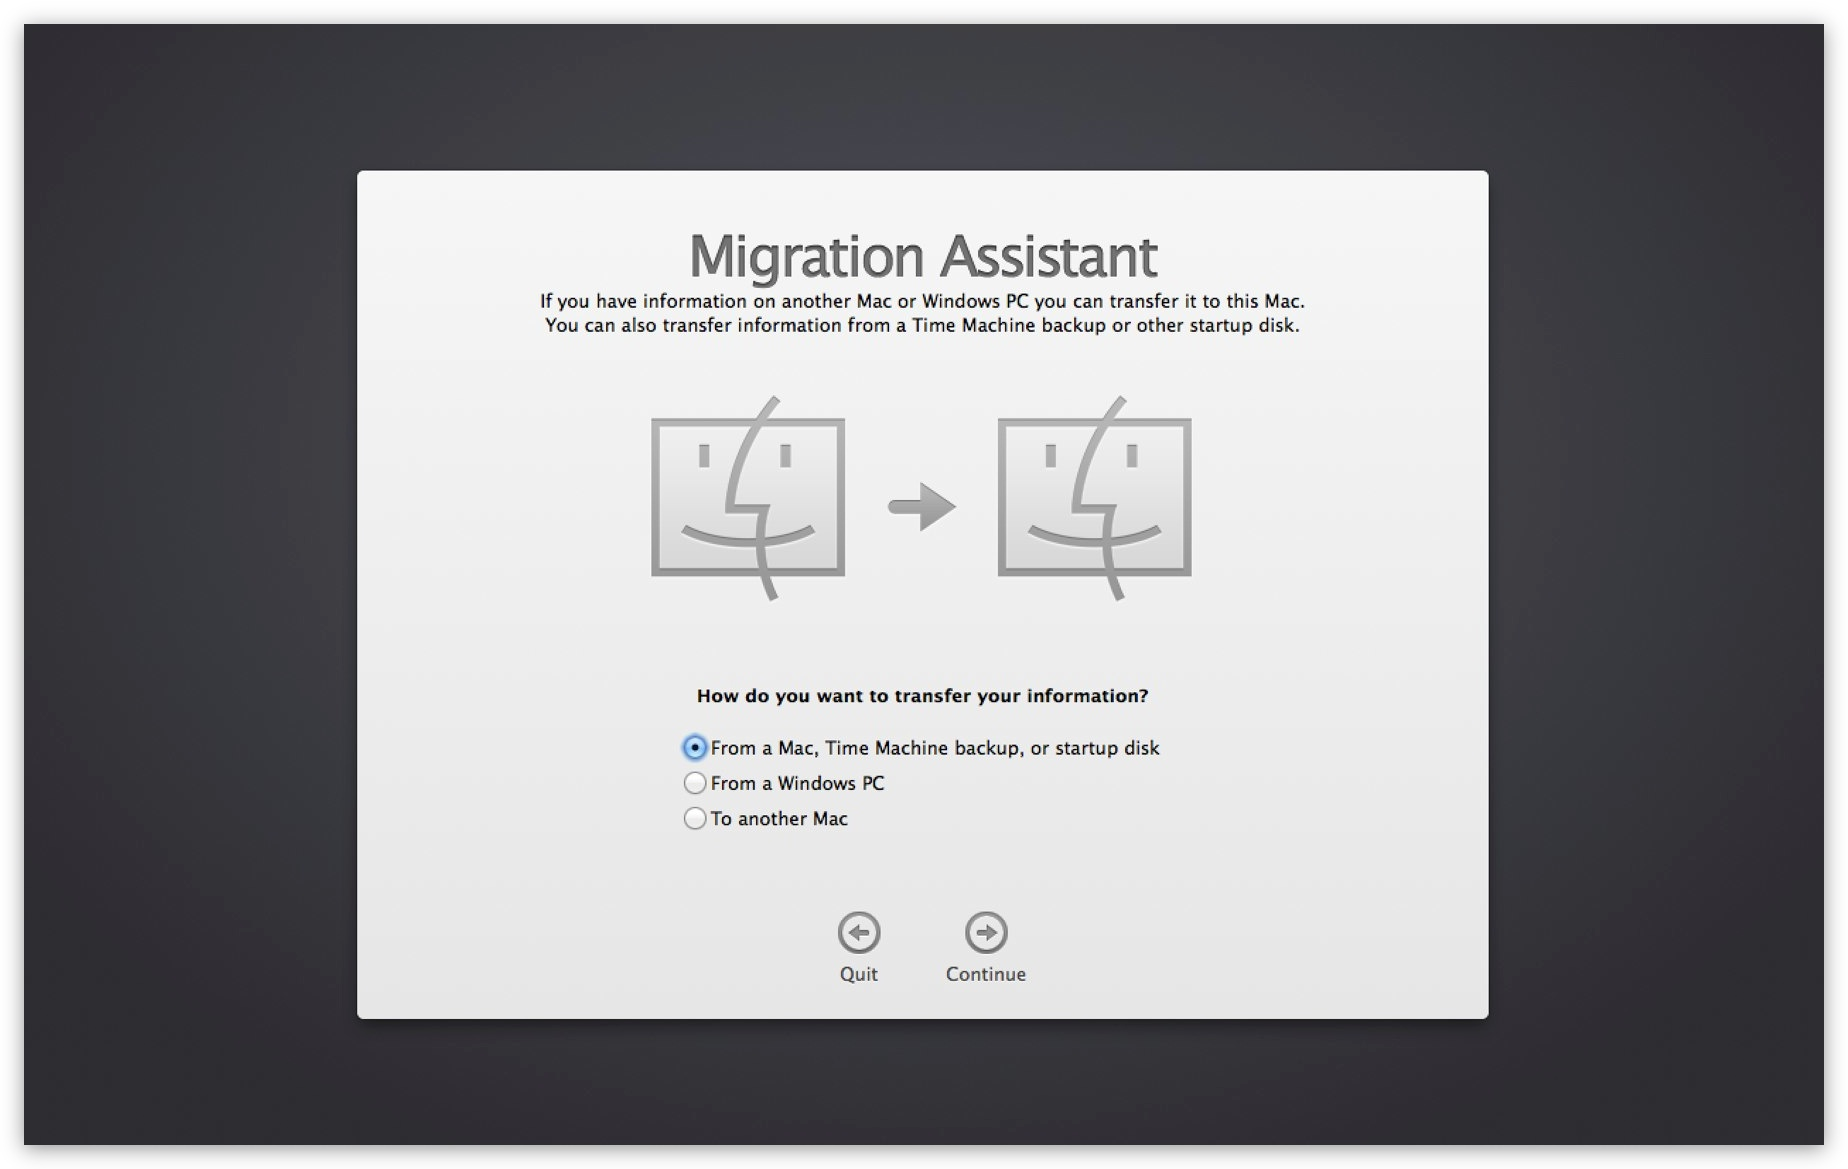 Migration Assistant can transfer all the data from one Mac to another